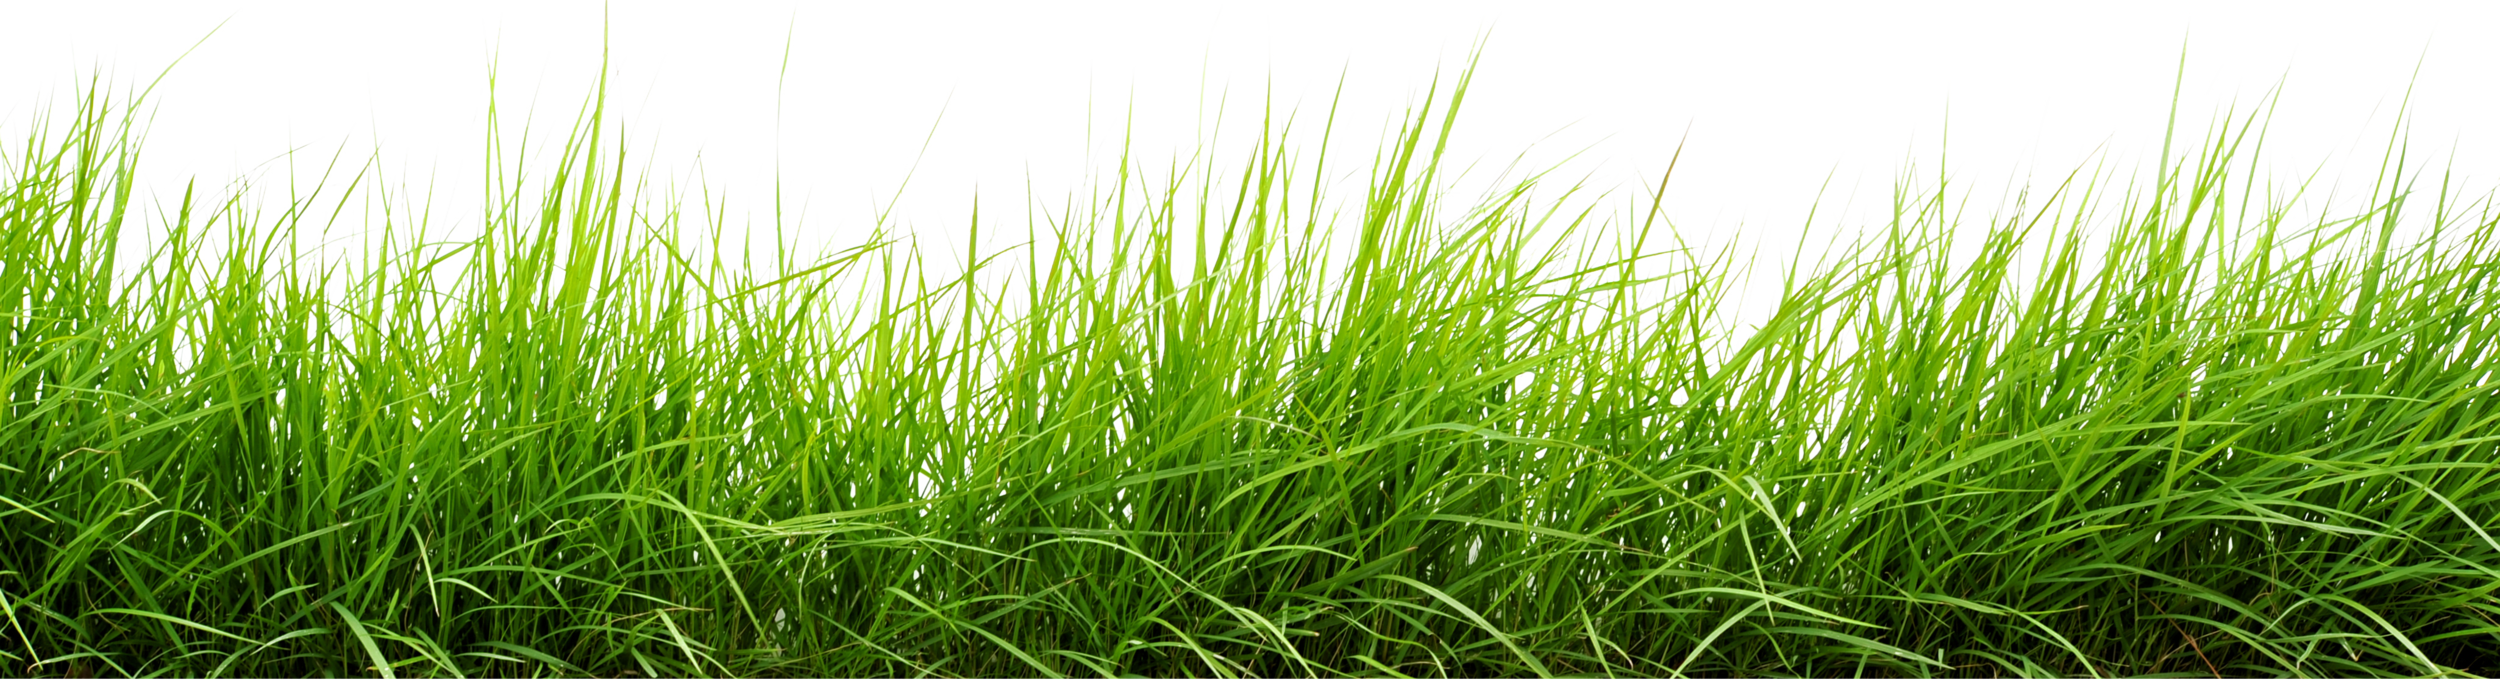 how to add grass in photoshop